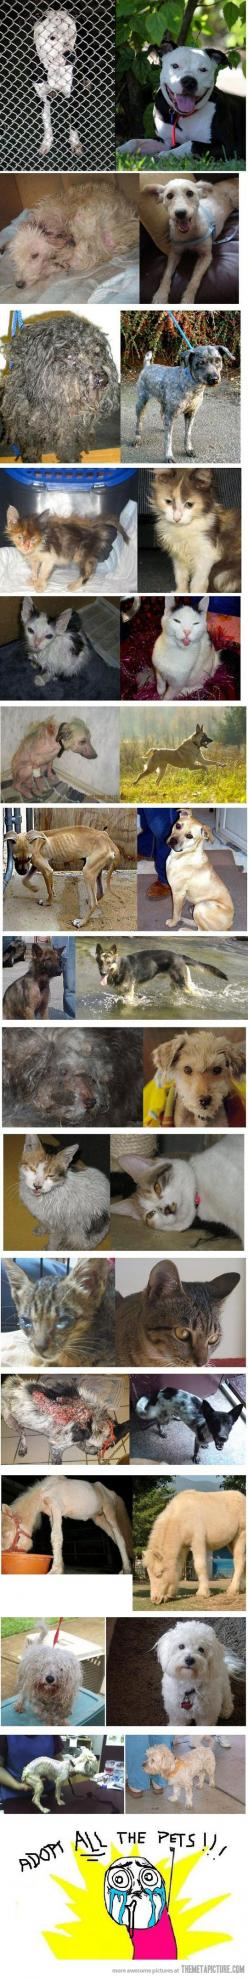 Rescued animals: before and after!: Rescue Dogs, Animal Rescue, Adoption, Animal Rights, Animal Cruelty, Pets, Animal Abuse